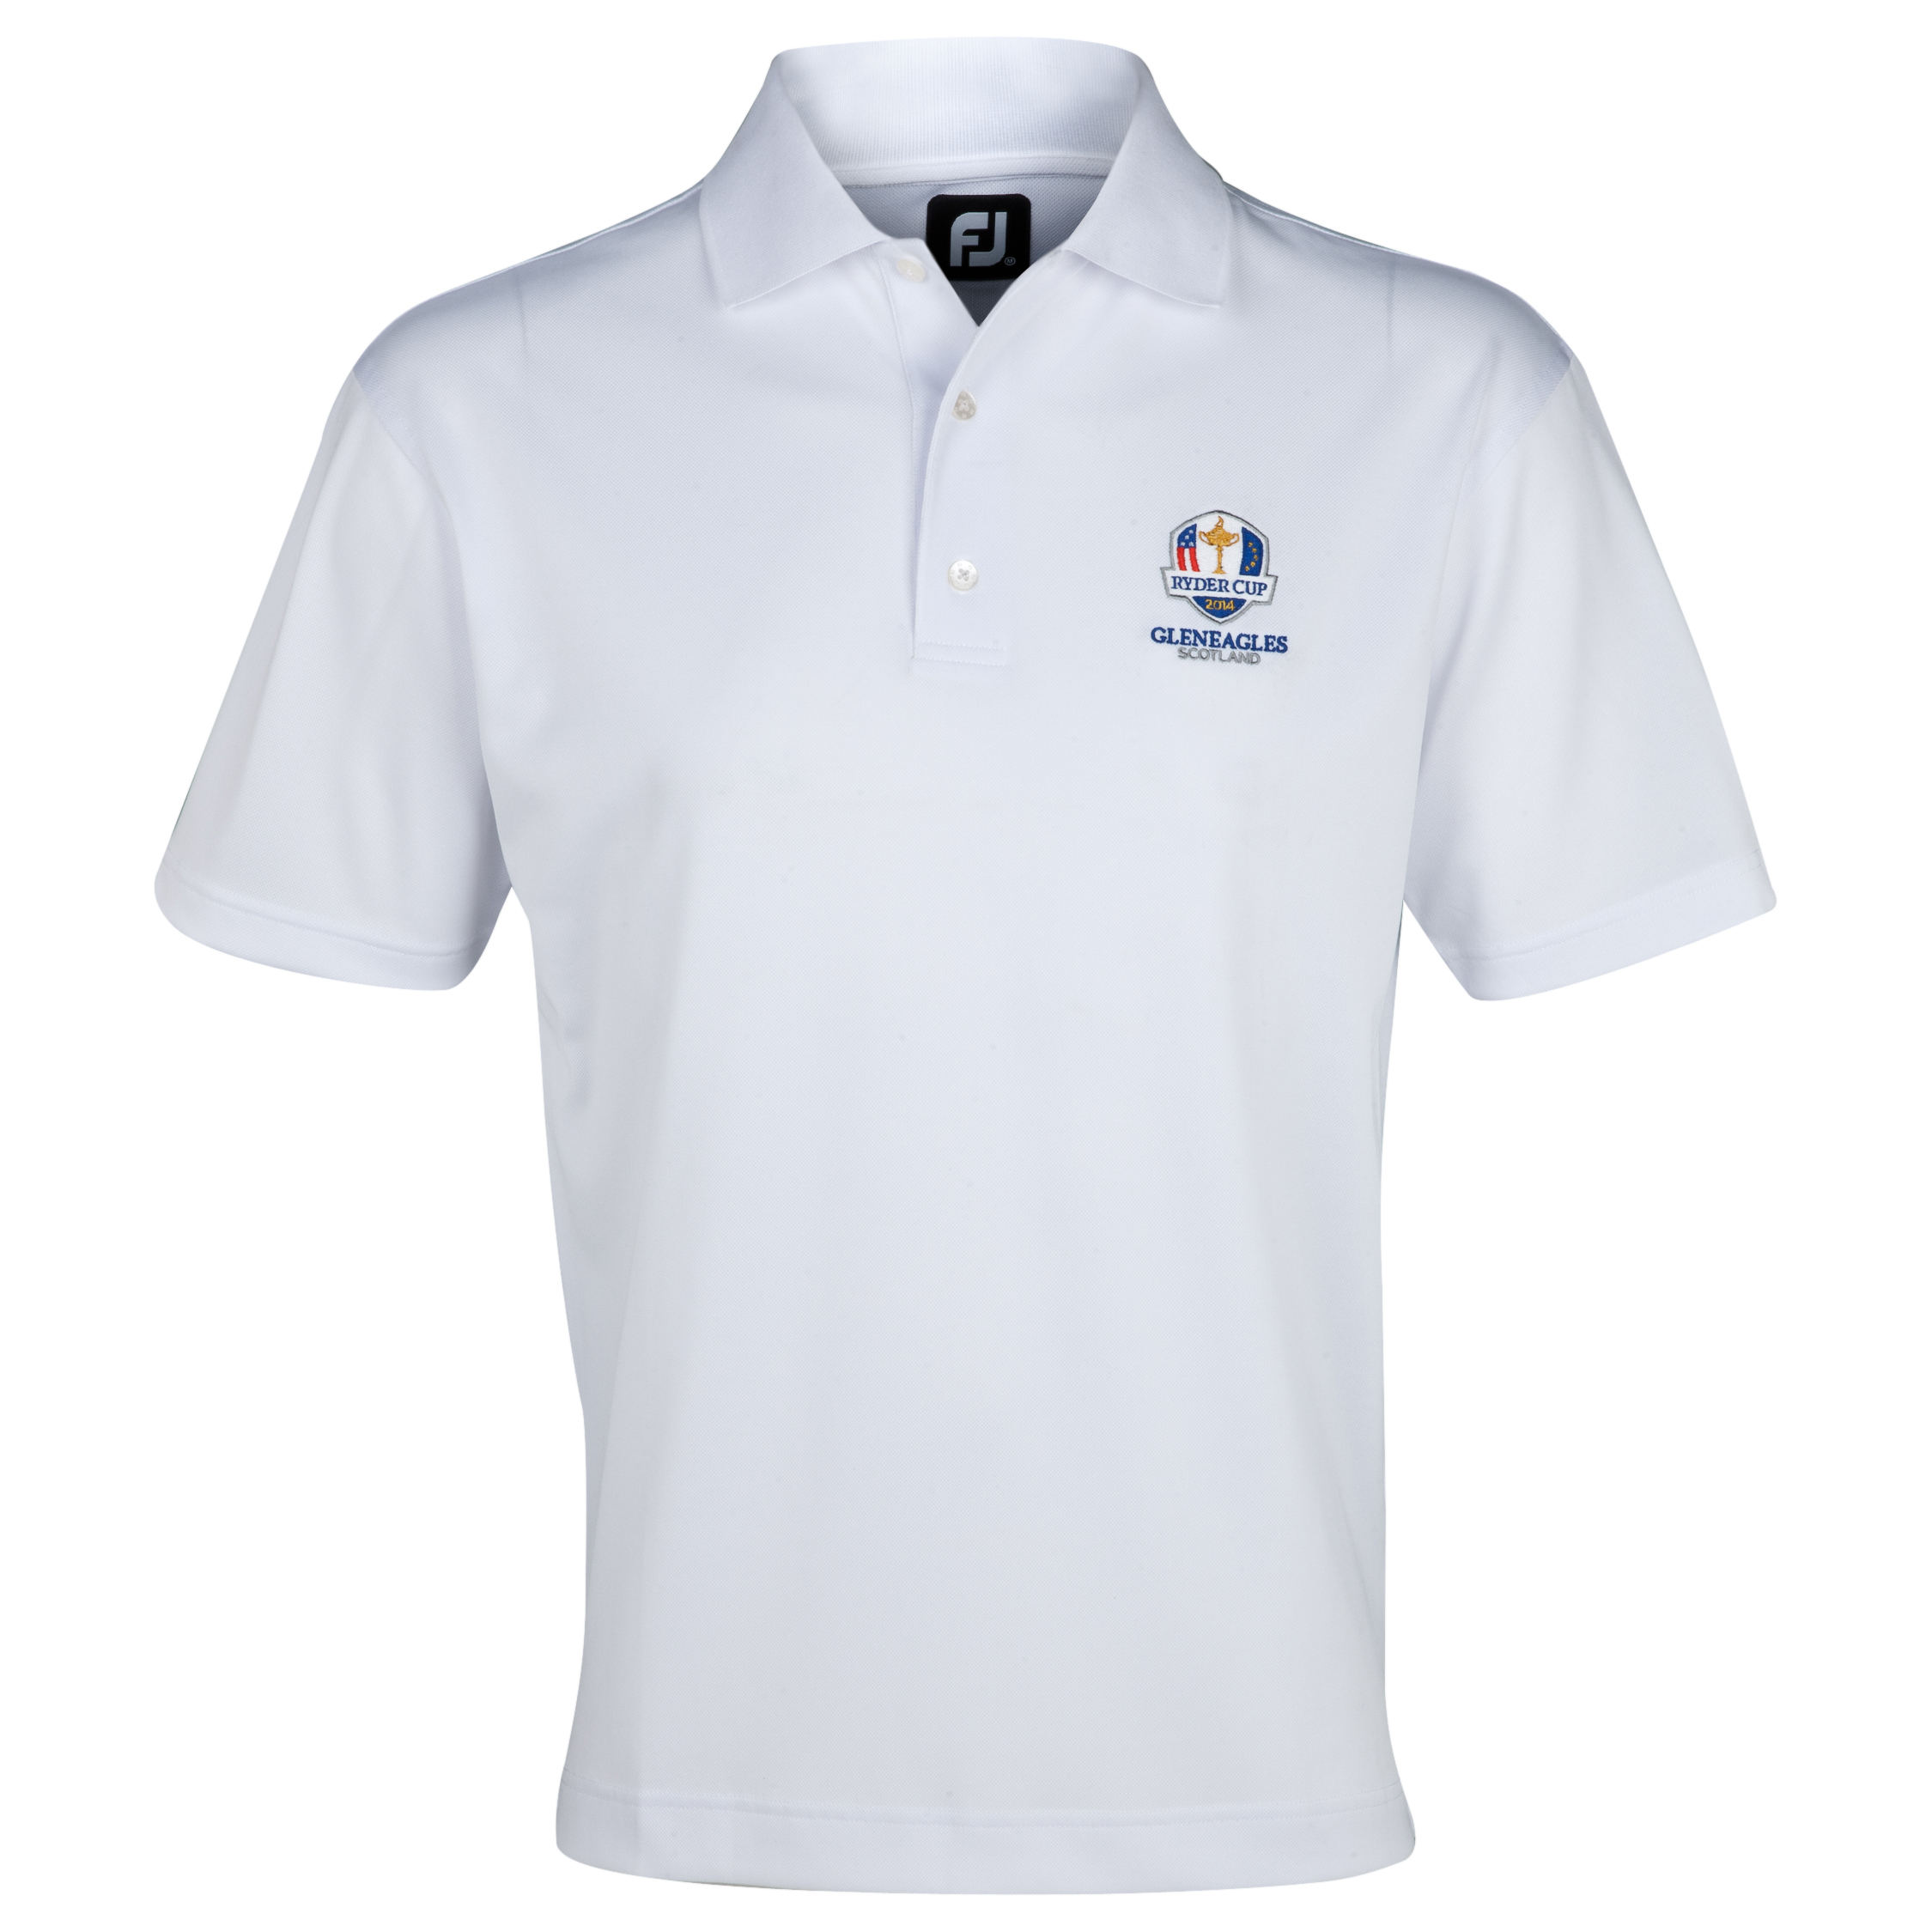 The 2014 Ryder Cup Footjoy Stretch Pique Polo White